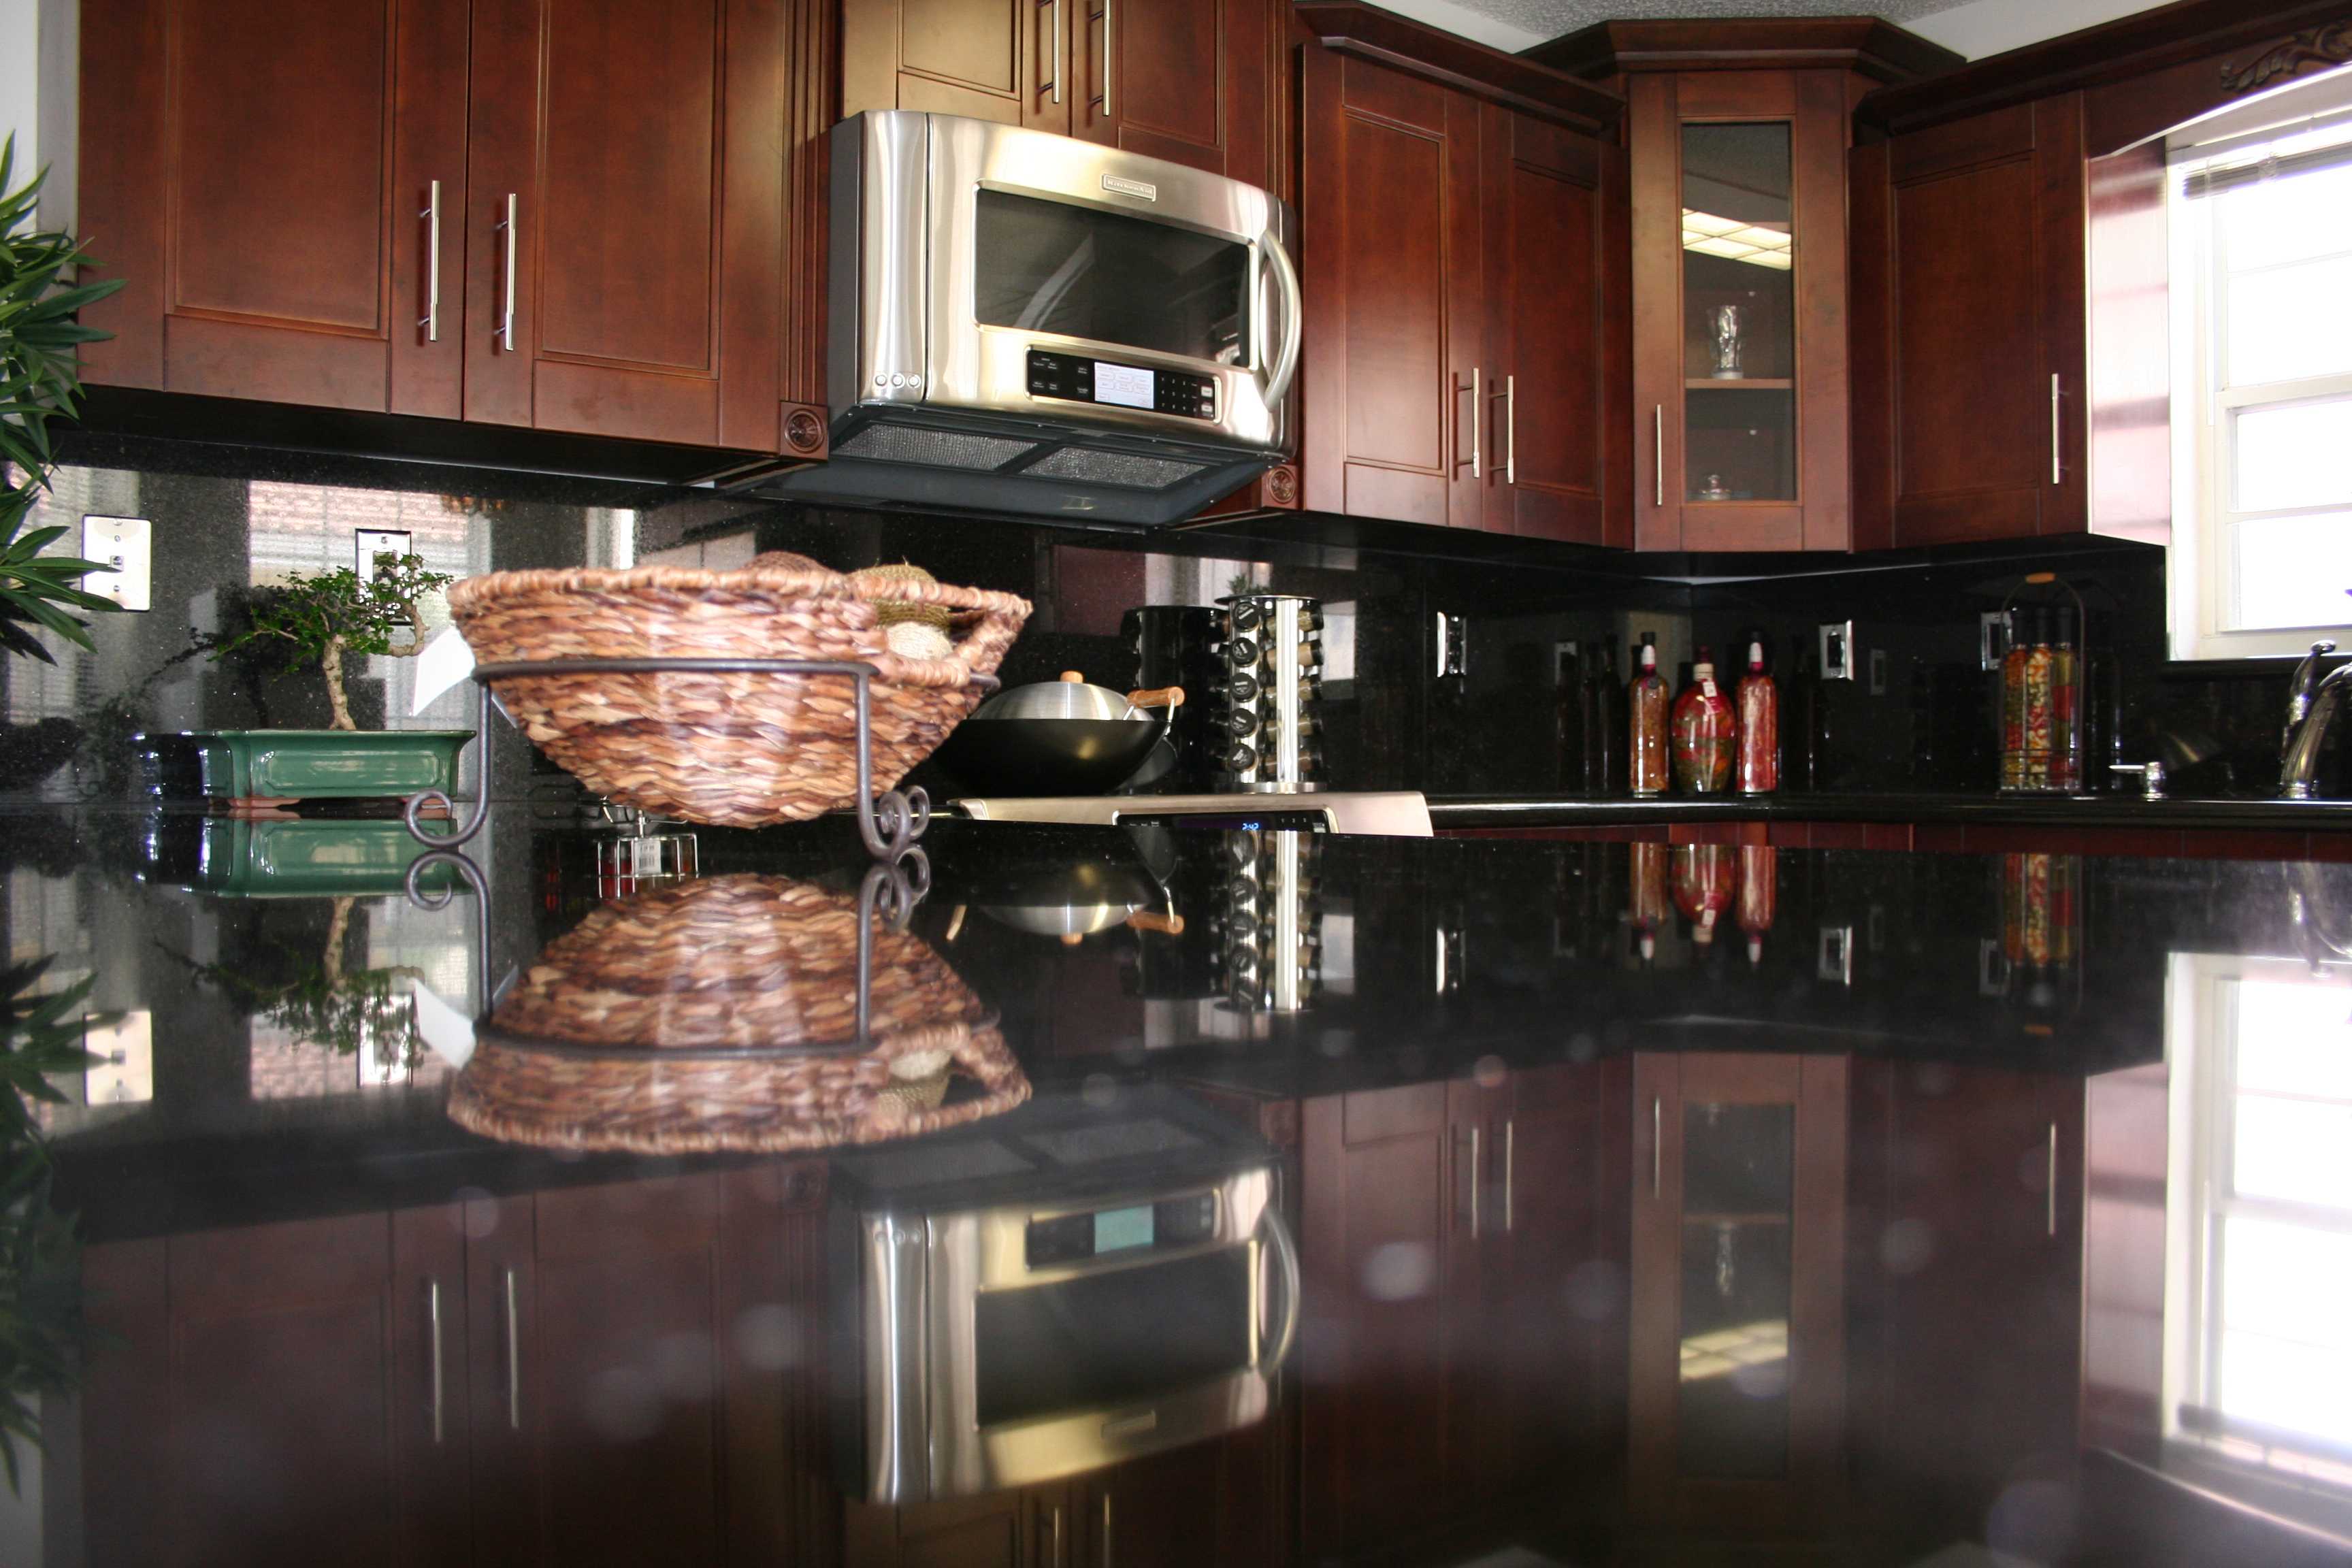 lovely kitchens after cathedral rajasweetshouston cherry pic marvellous our kitchen with com client are of used cabinet cabinets